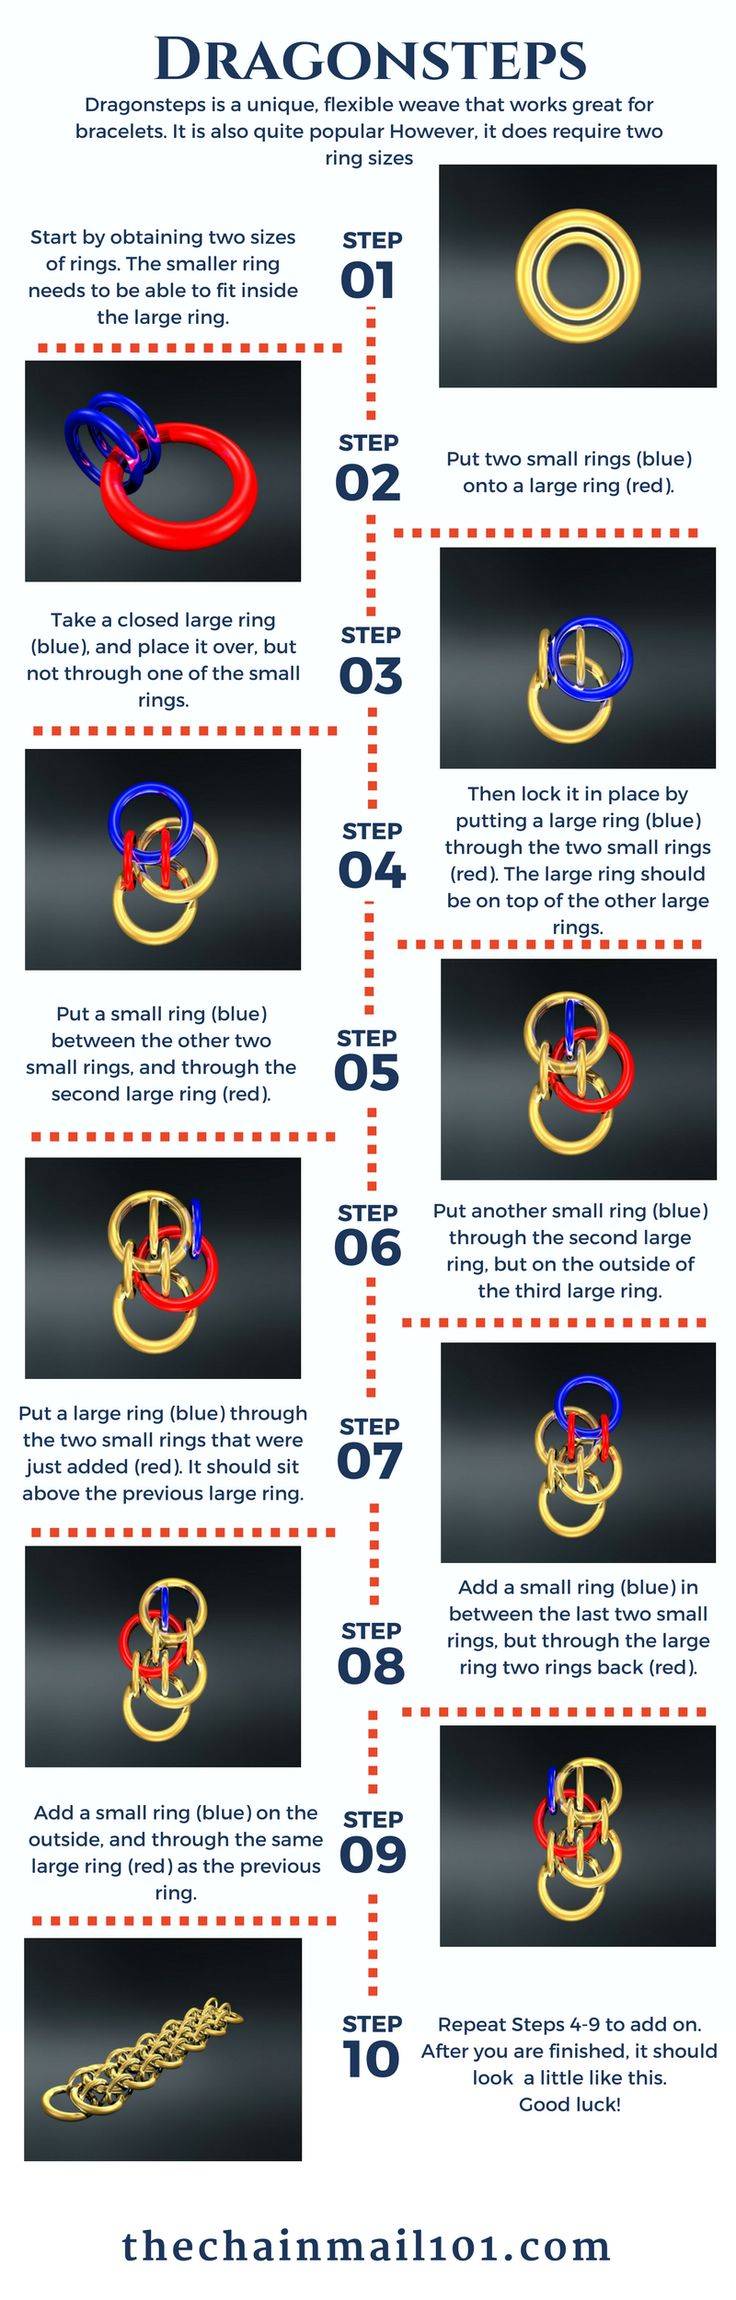 Learn how to make the Dragonsteps chainmail weave with this helpful infographic! - thechainmail101.com/dragonsteps